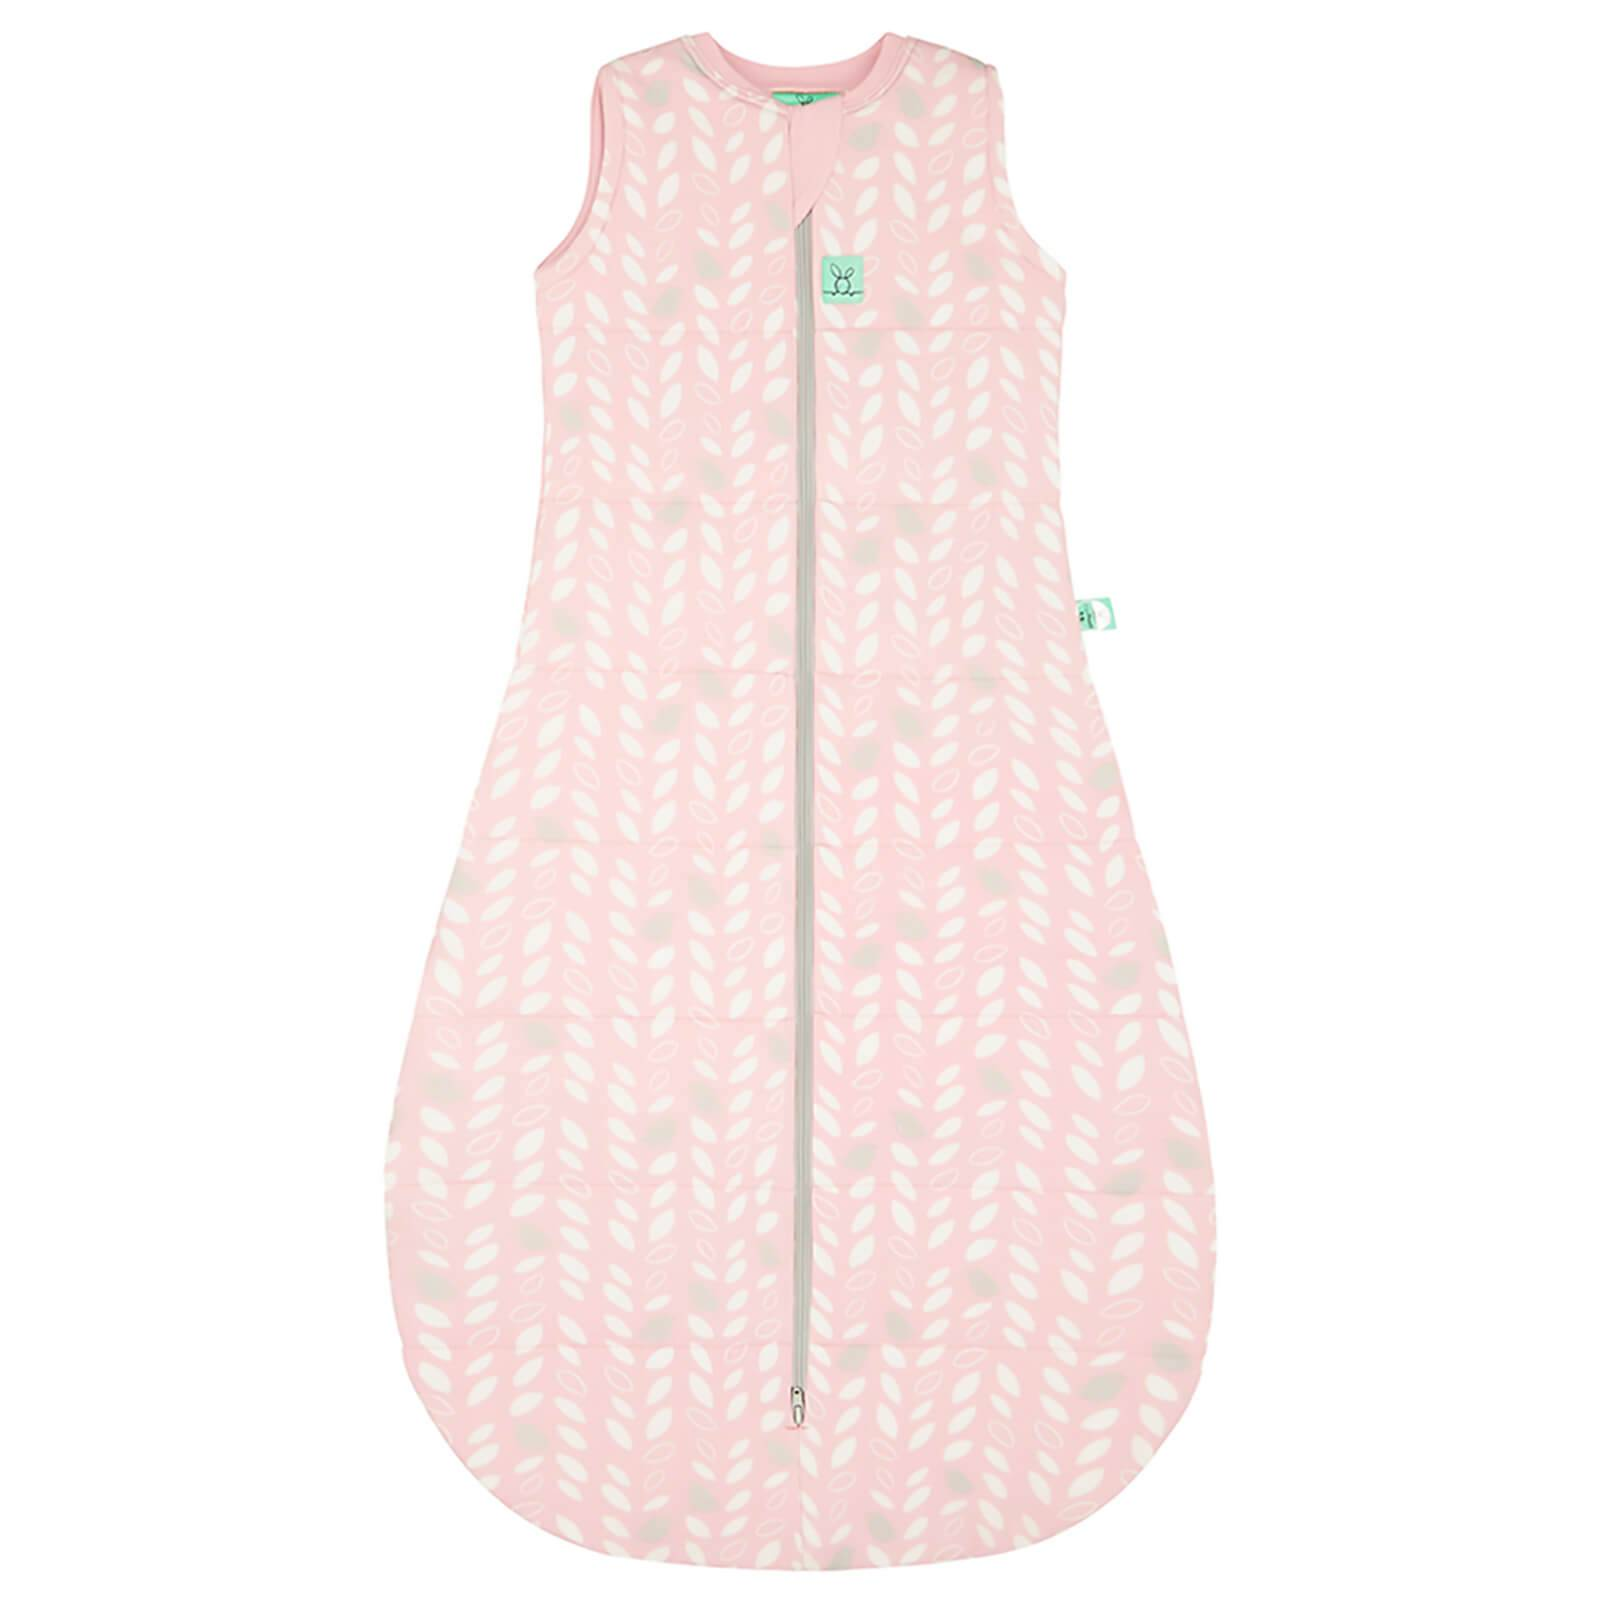 ergoPouch Cocoon Swaddle and Sleep Bag - 2.5 Tog - Spring Leaves - 0-3 months - Pink